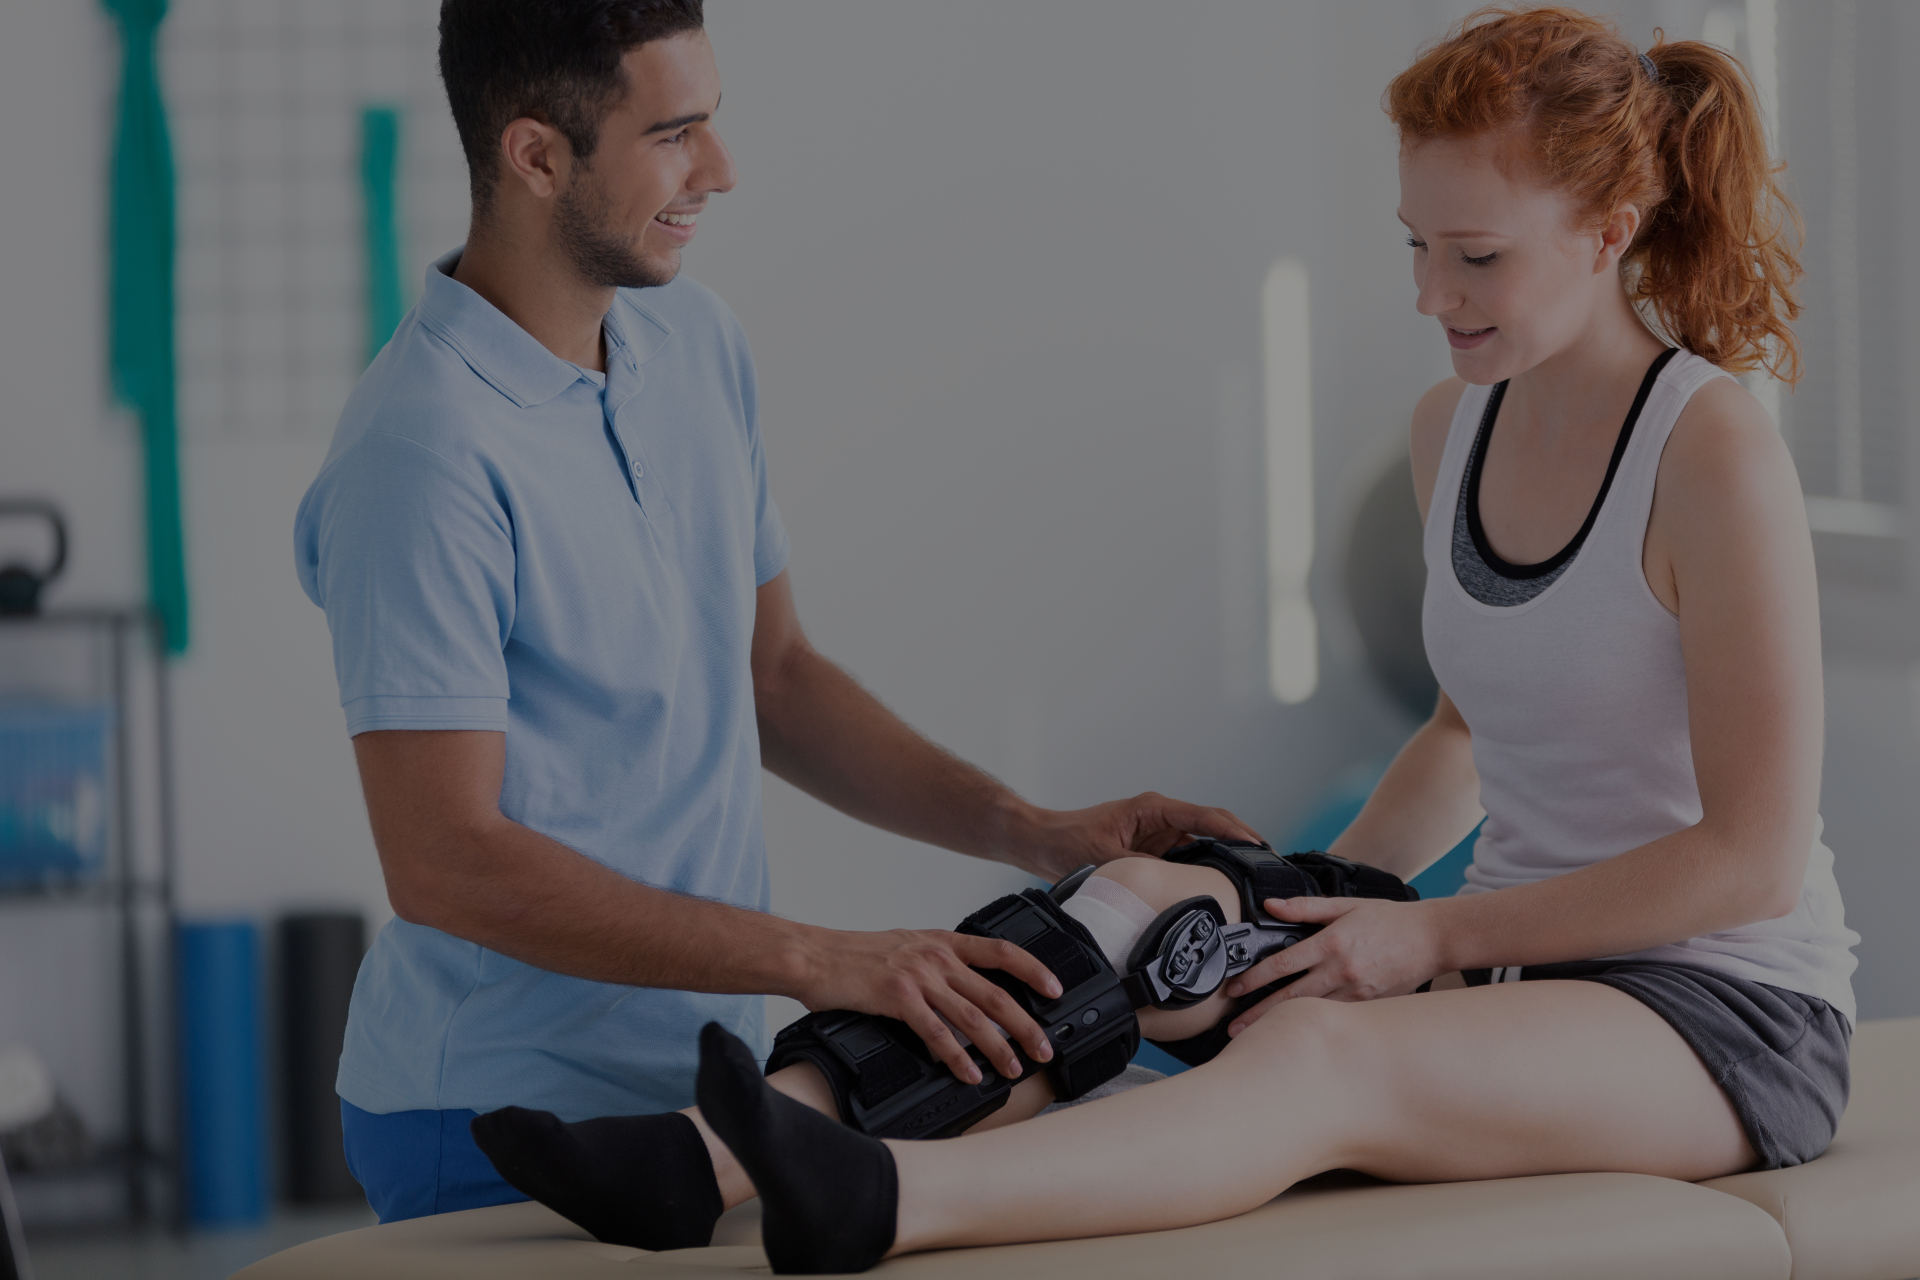 PNW rehabilitation and chiropractic care